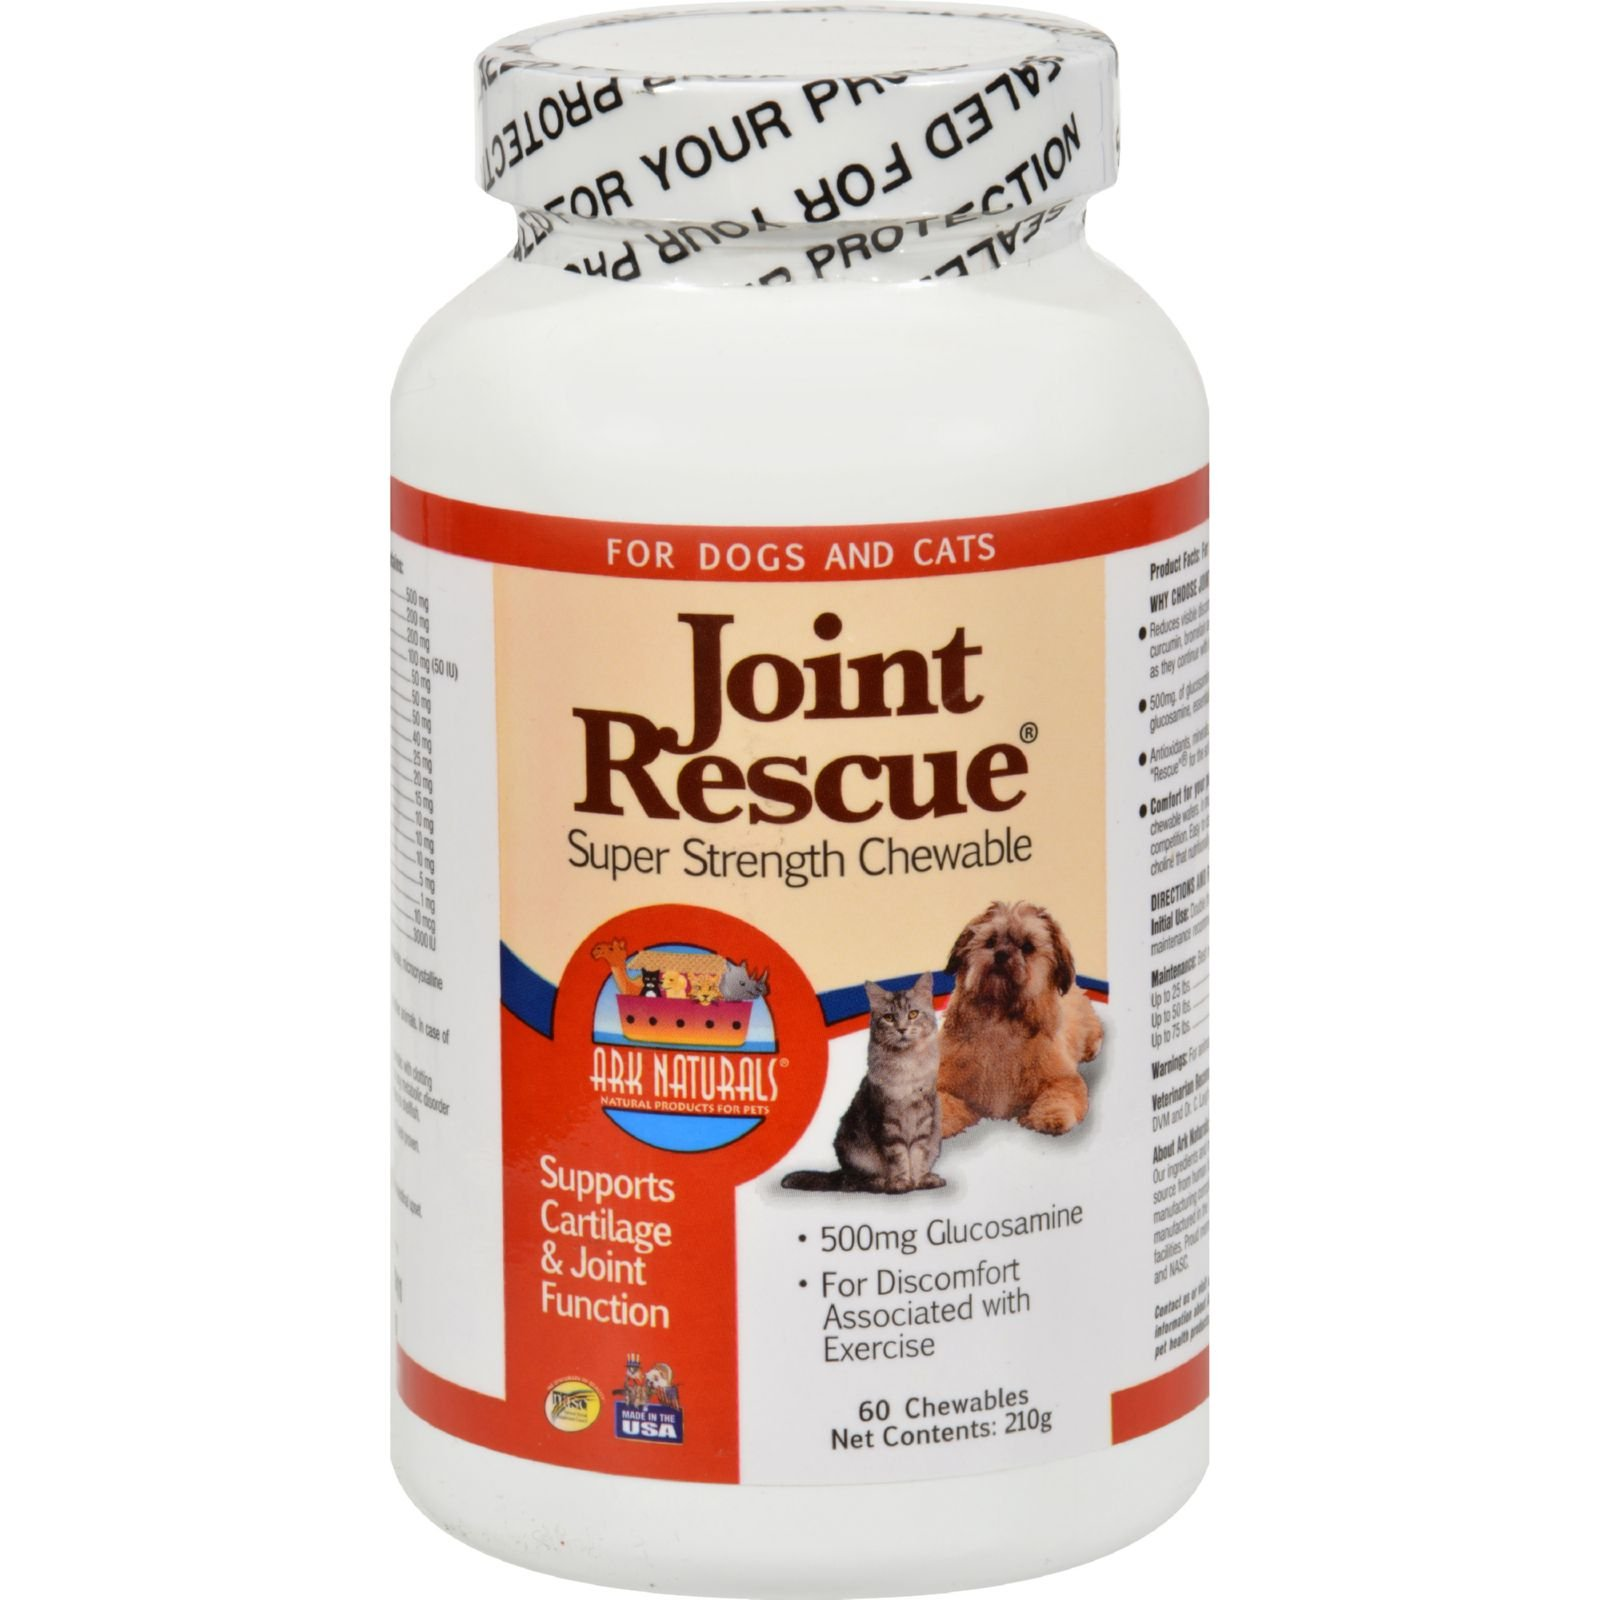 Dog Food That Helps With Joint Pain